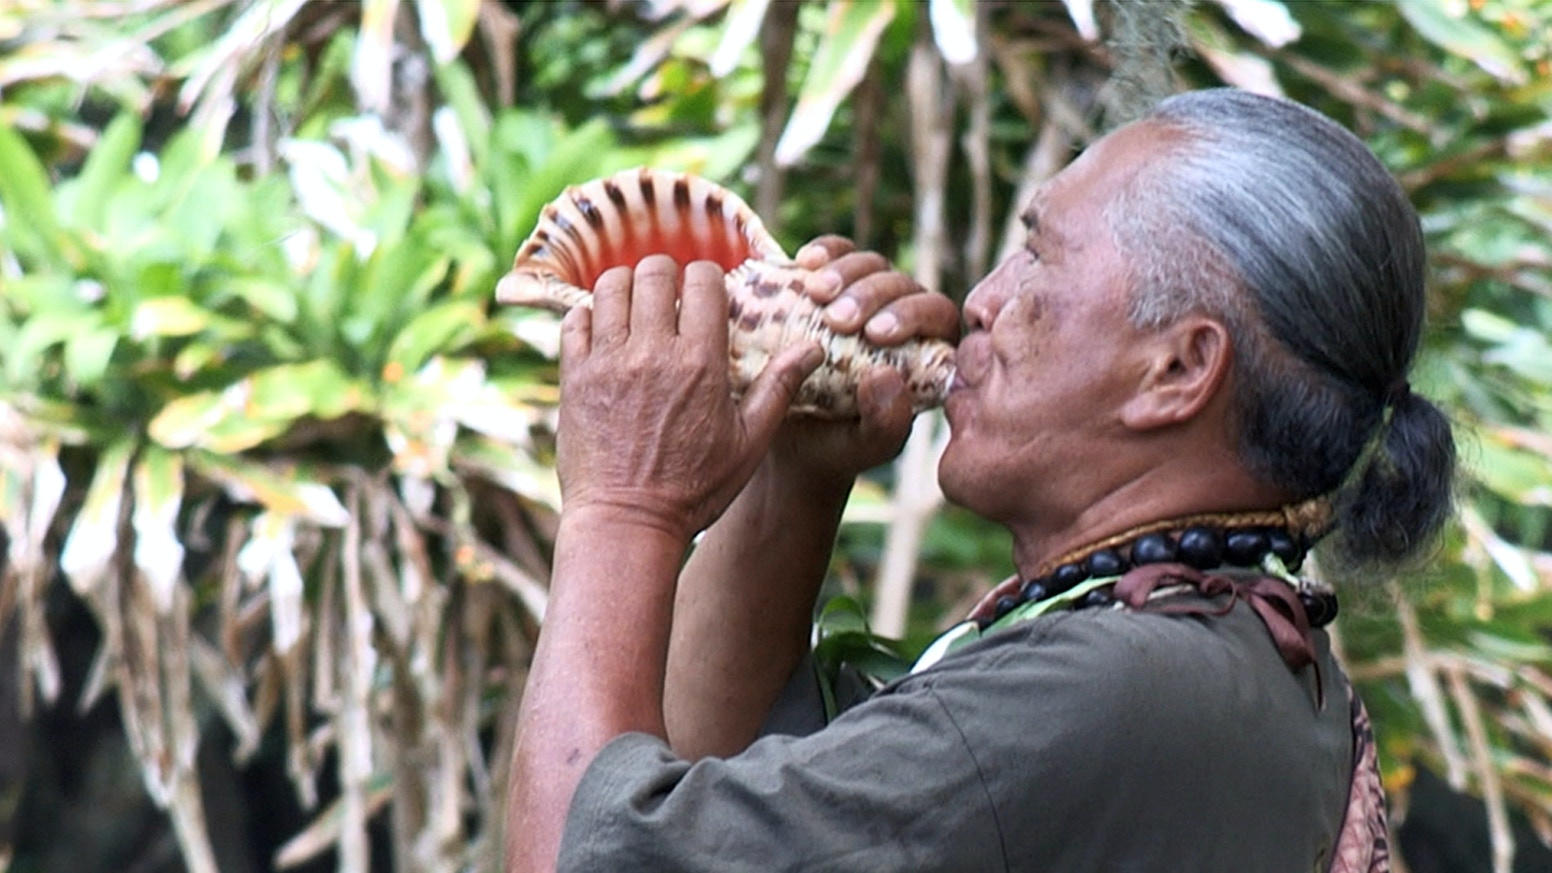 One of the last Hawaiians born and raised in Molokai's treasured Hālawa Valley, Pilipo must pass along the legacy of his ancestors.